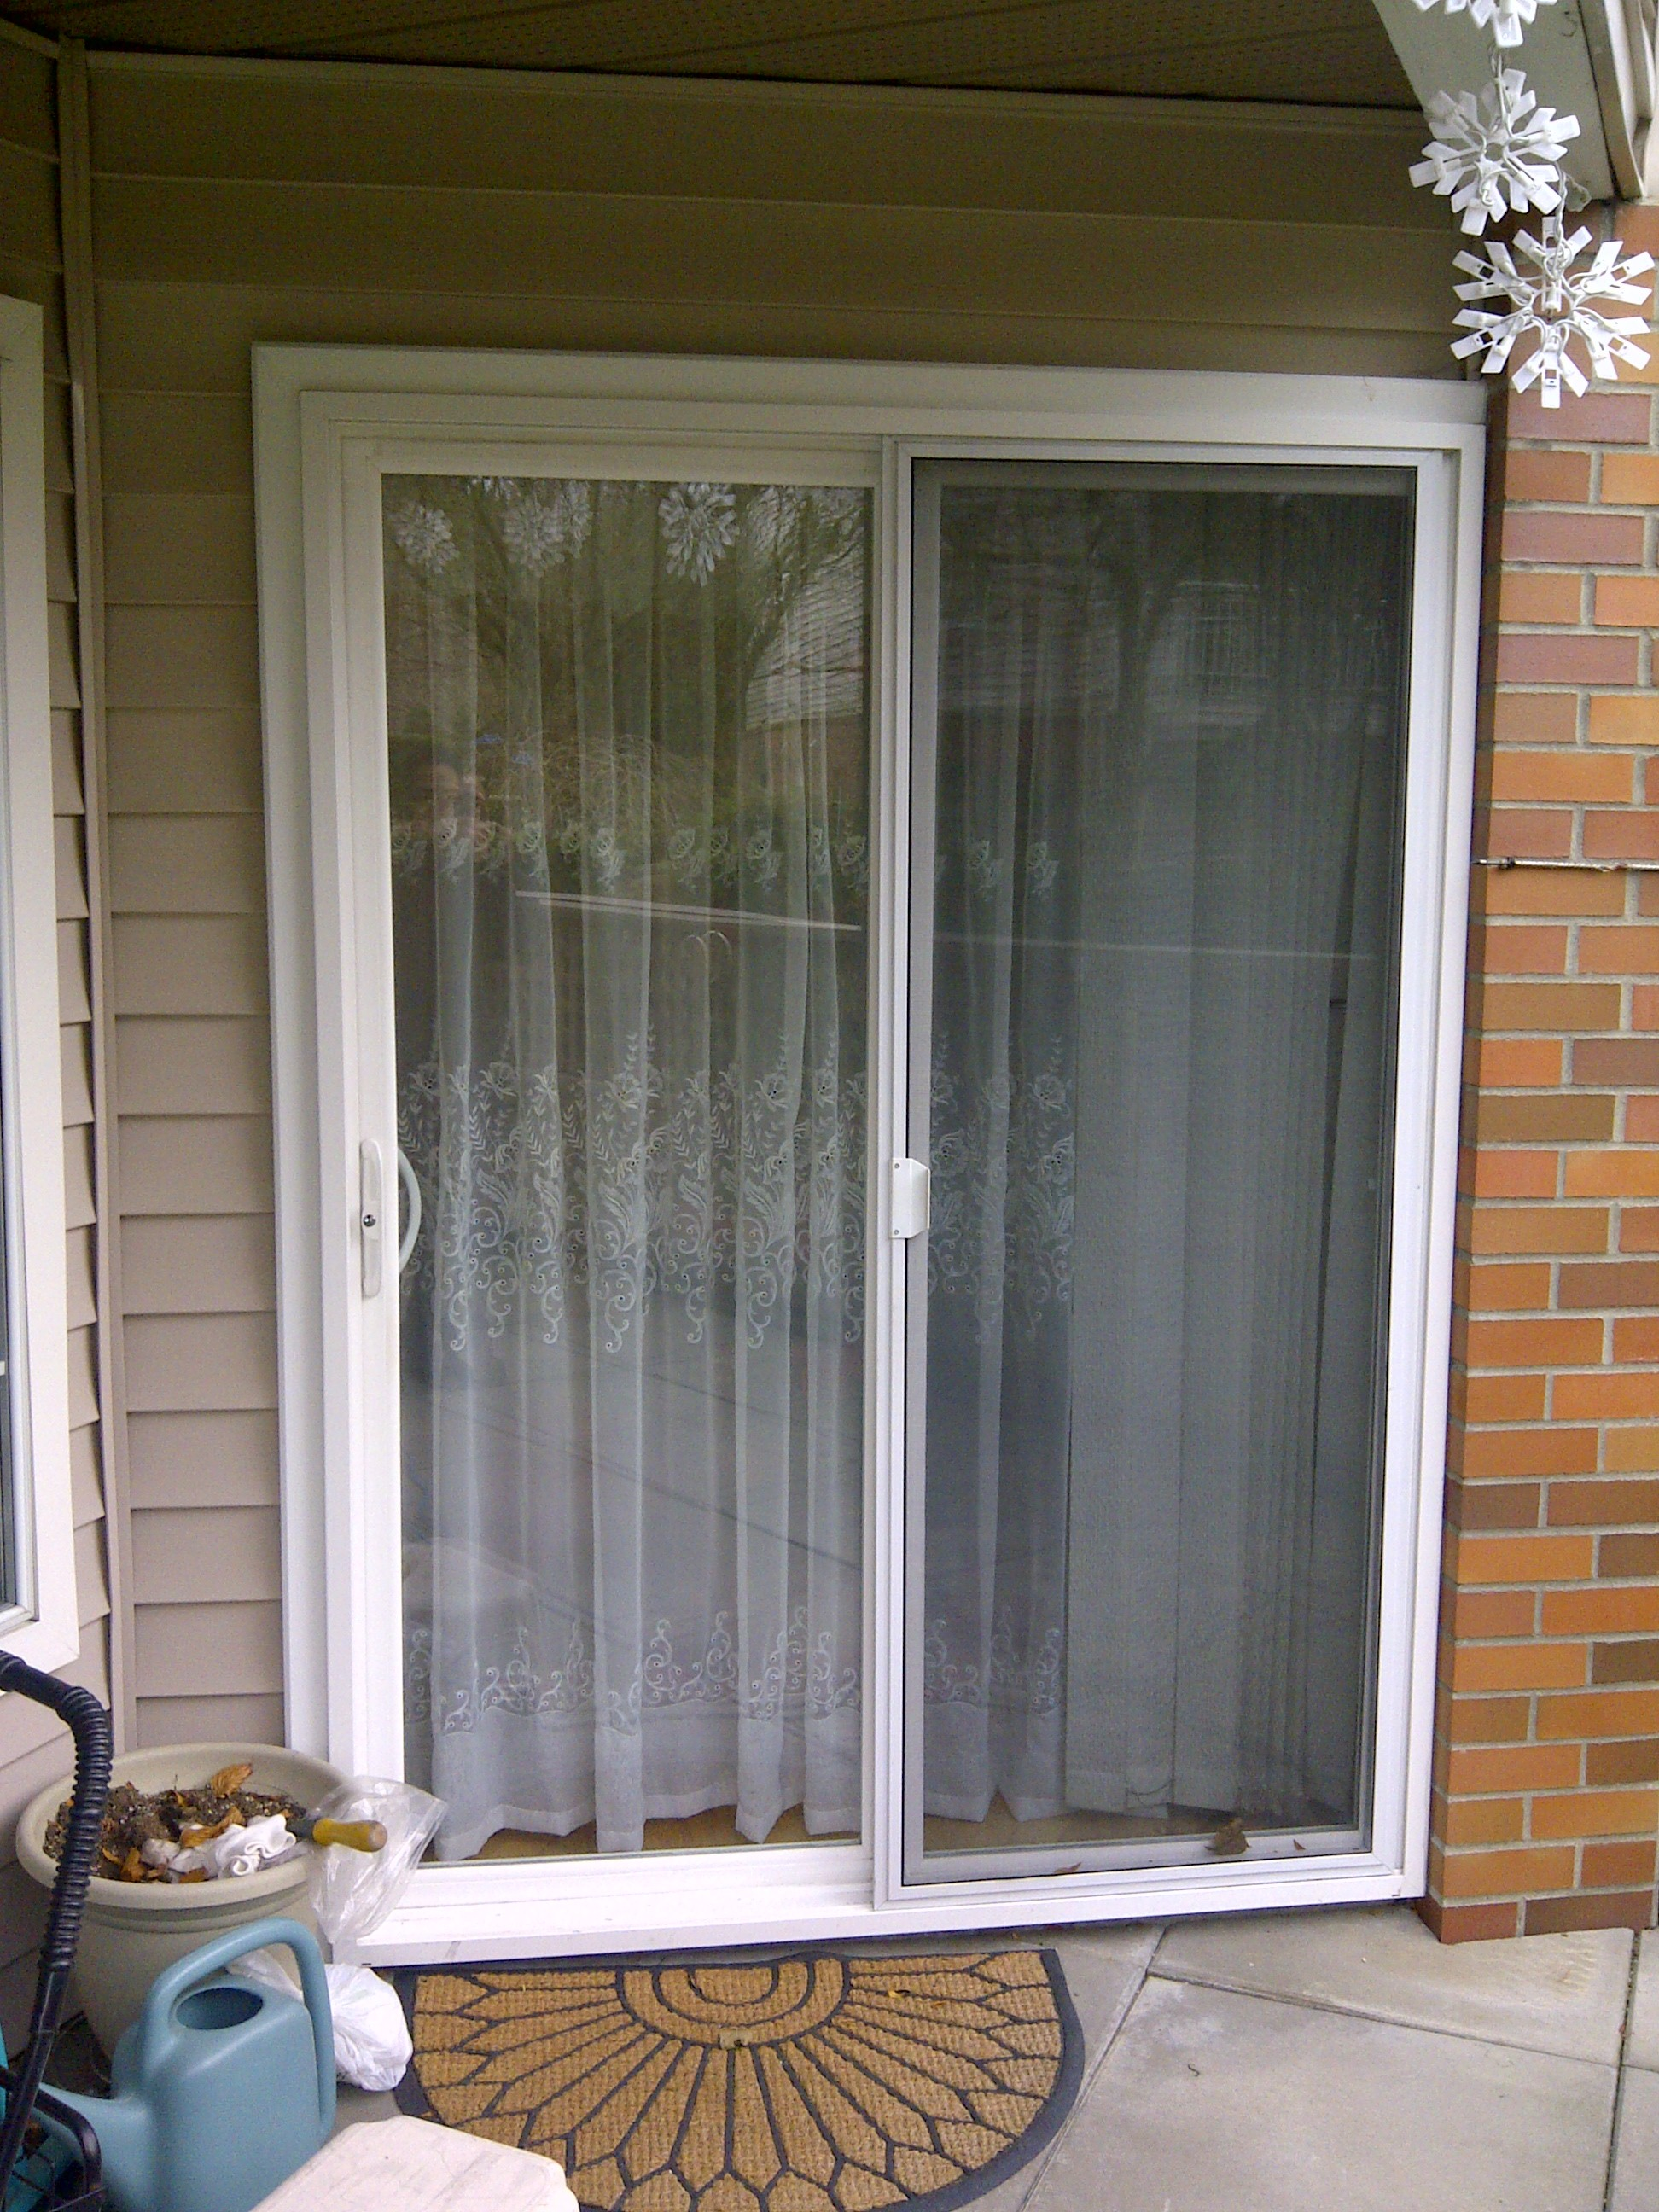 Commercial glass canopy repair in vancouver b c for Small sliding glass patio doors